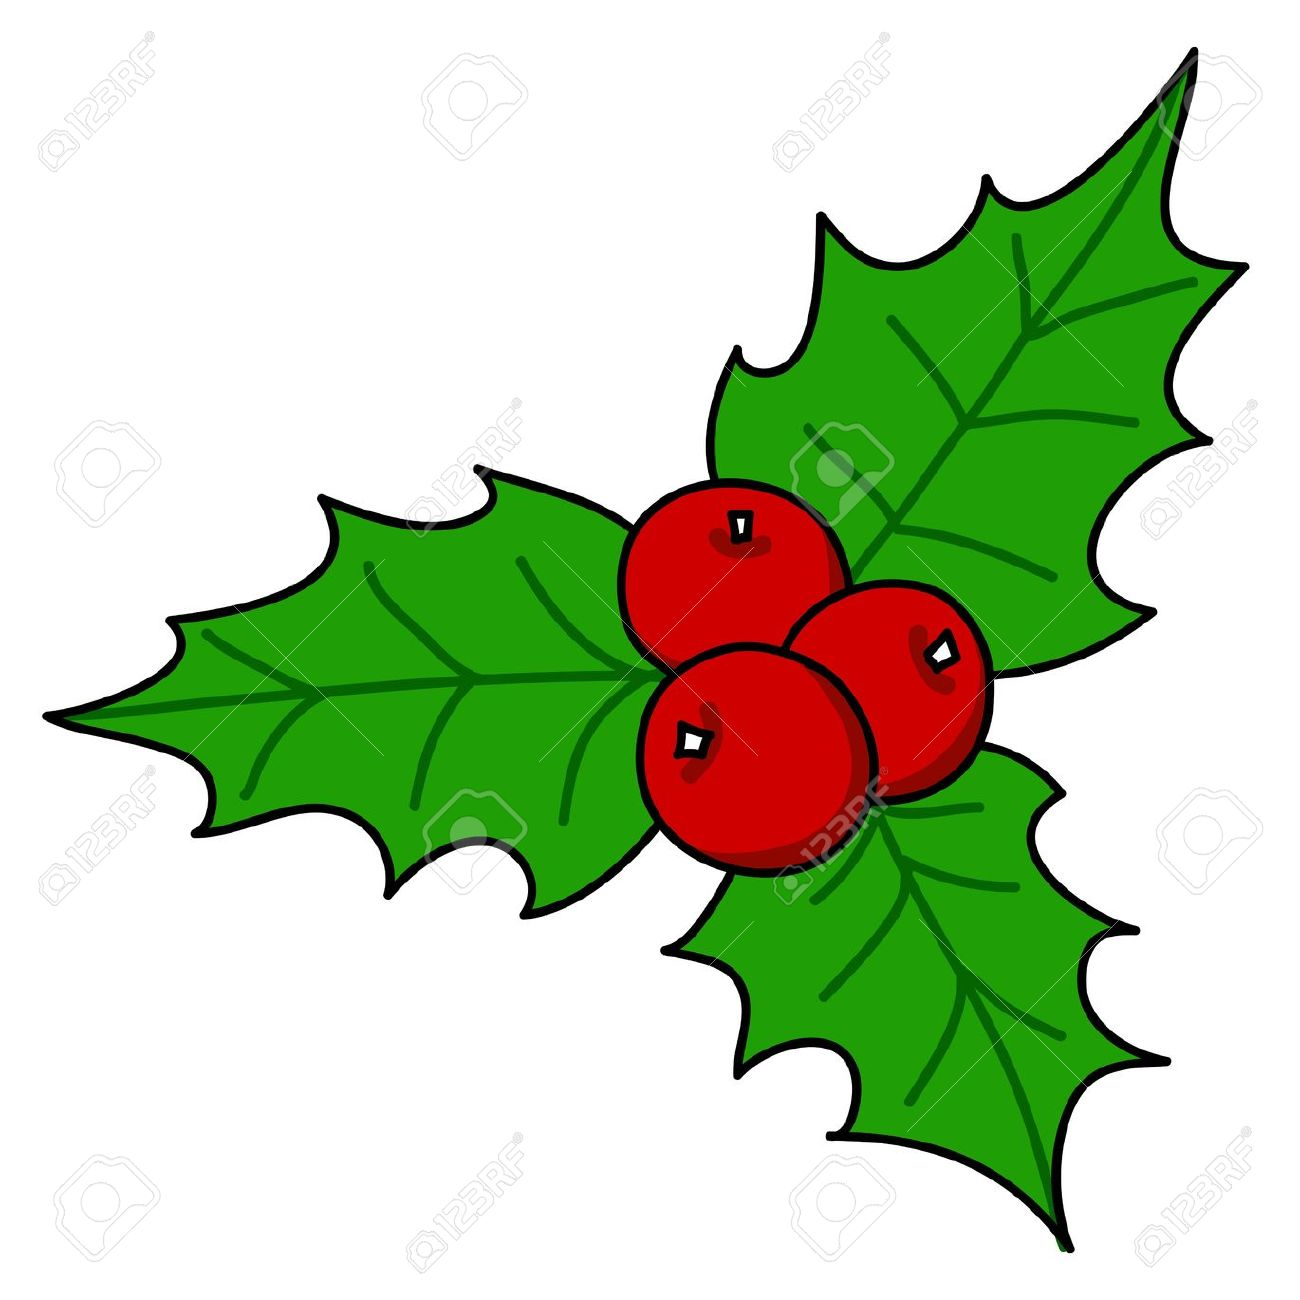 49 holly leaves and berries clip art